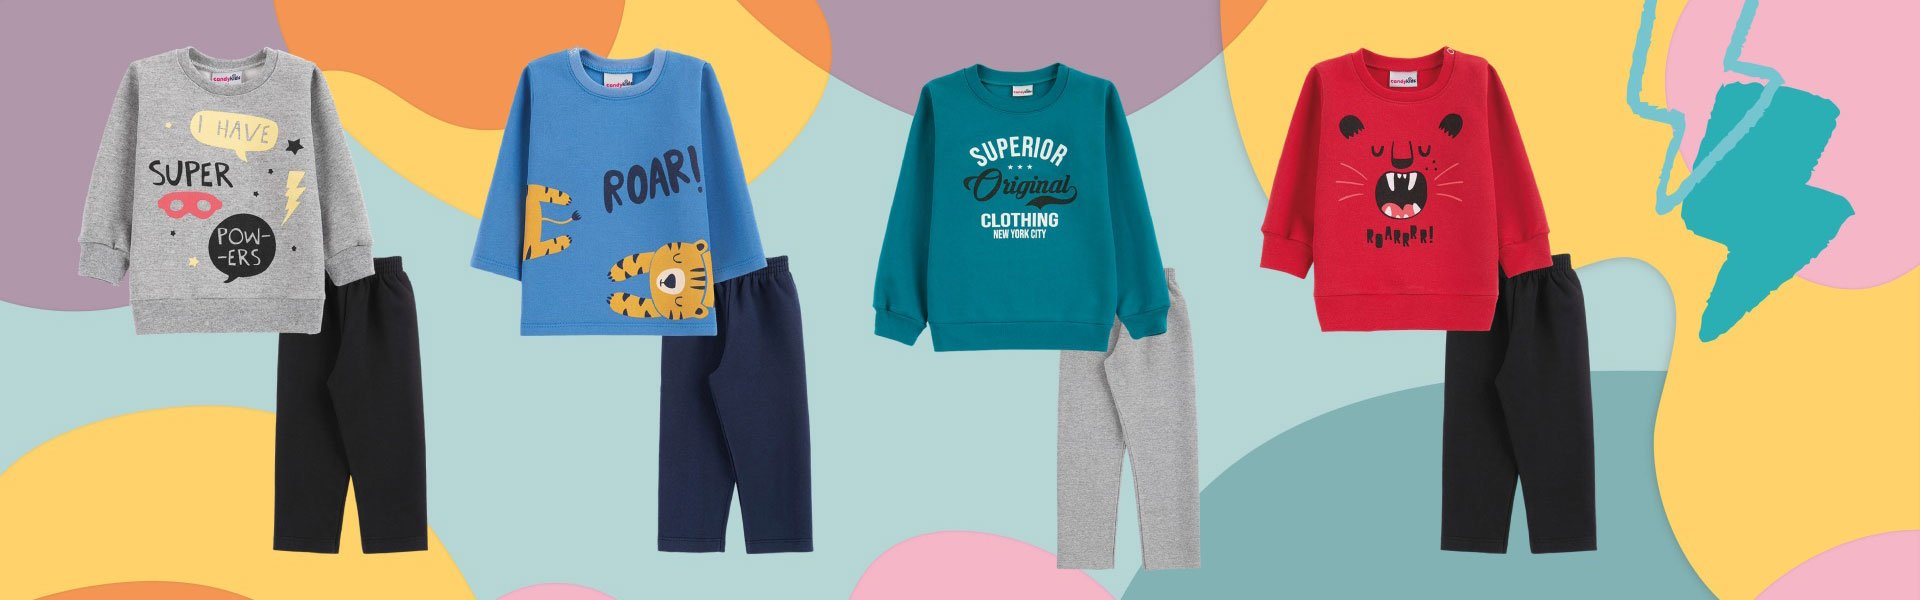 Banner Candy Kids Fashion 3